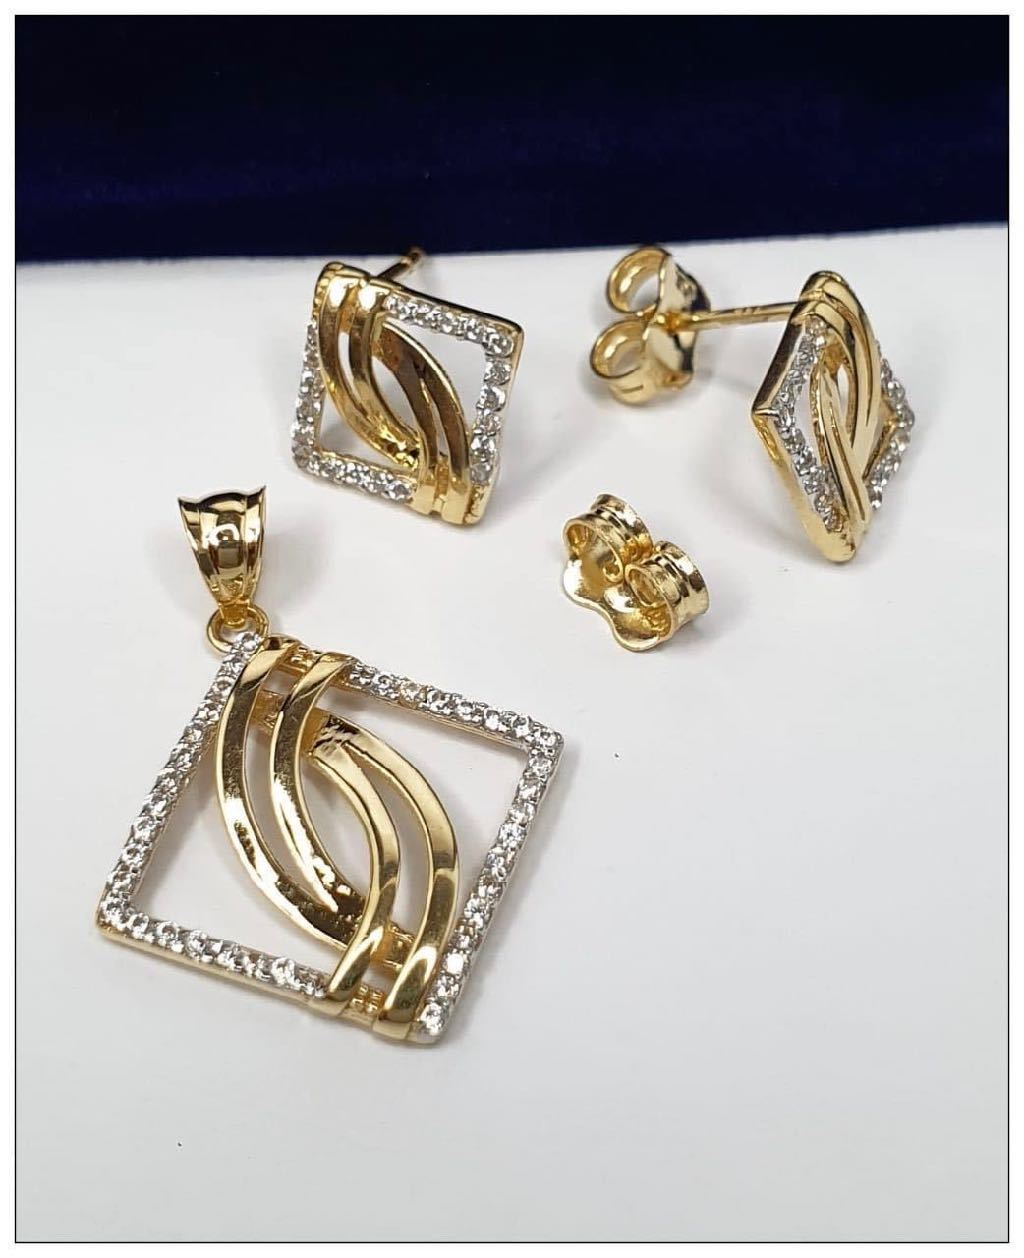 Jewelry Set in 18K Gold 21jntt10 - ZNZ Jewelry Philippines